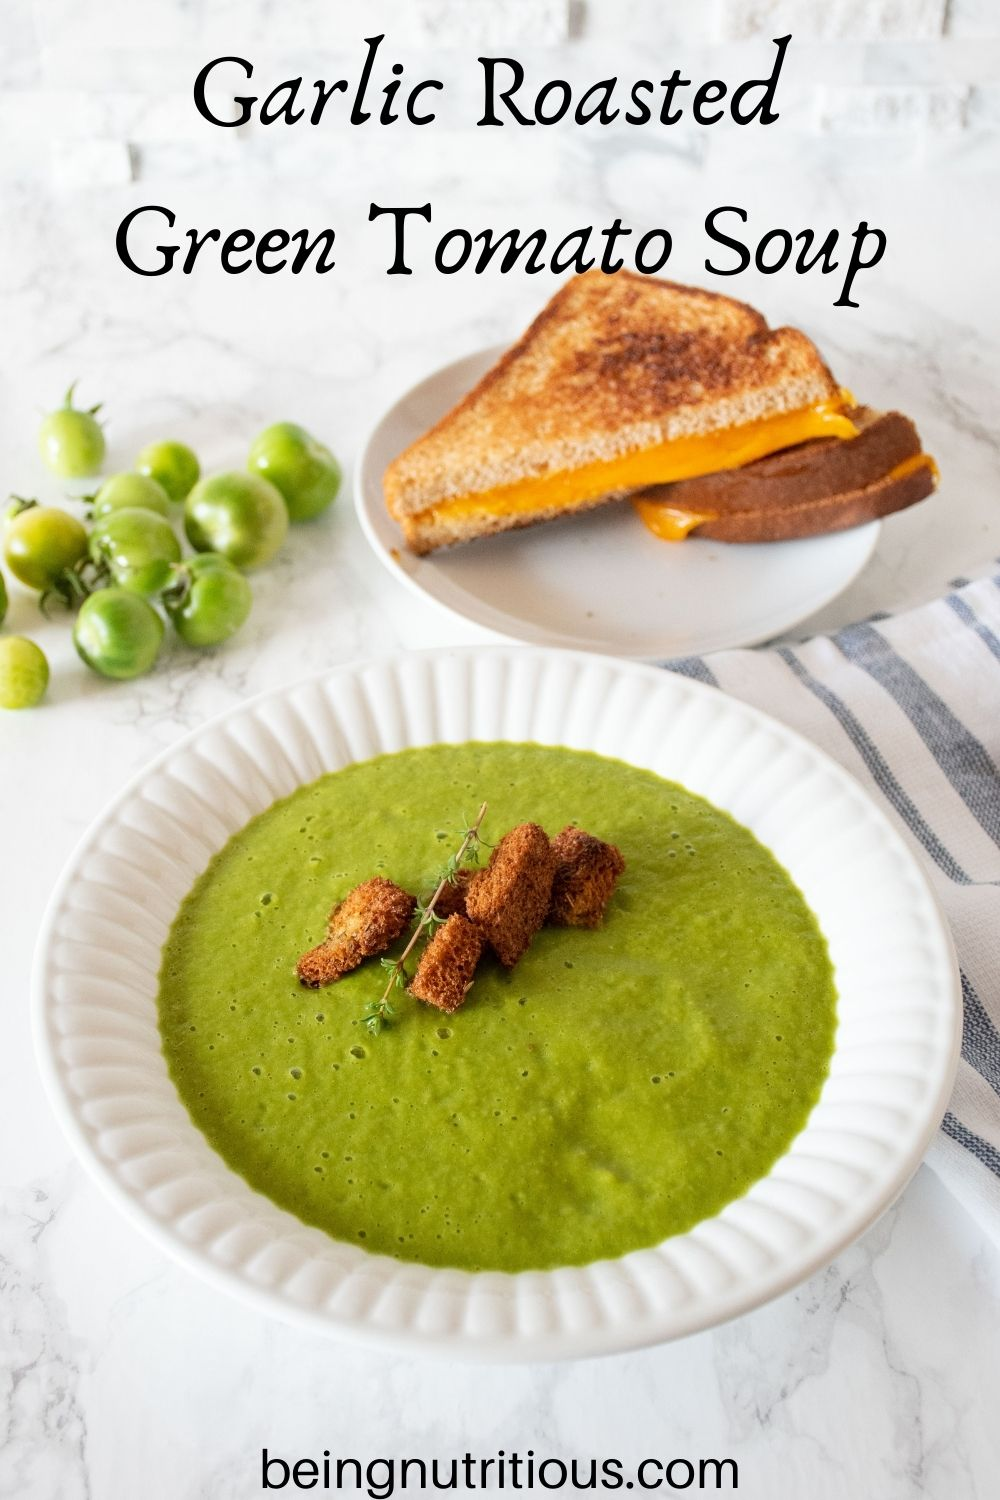 Green soup in a bowl with homemade croutons. Plate with grilled cheese sandwich in background. Text overlay: Garlic Roasted Green Tomato Soup.